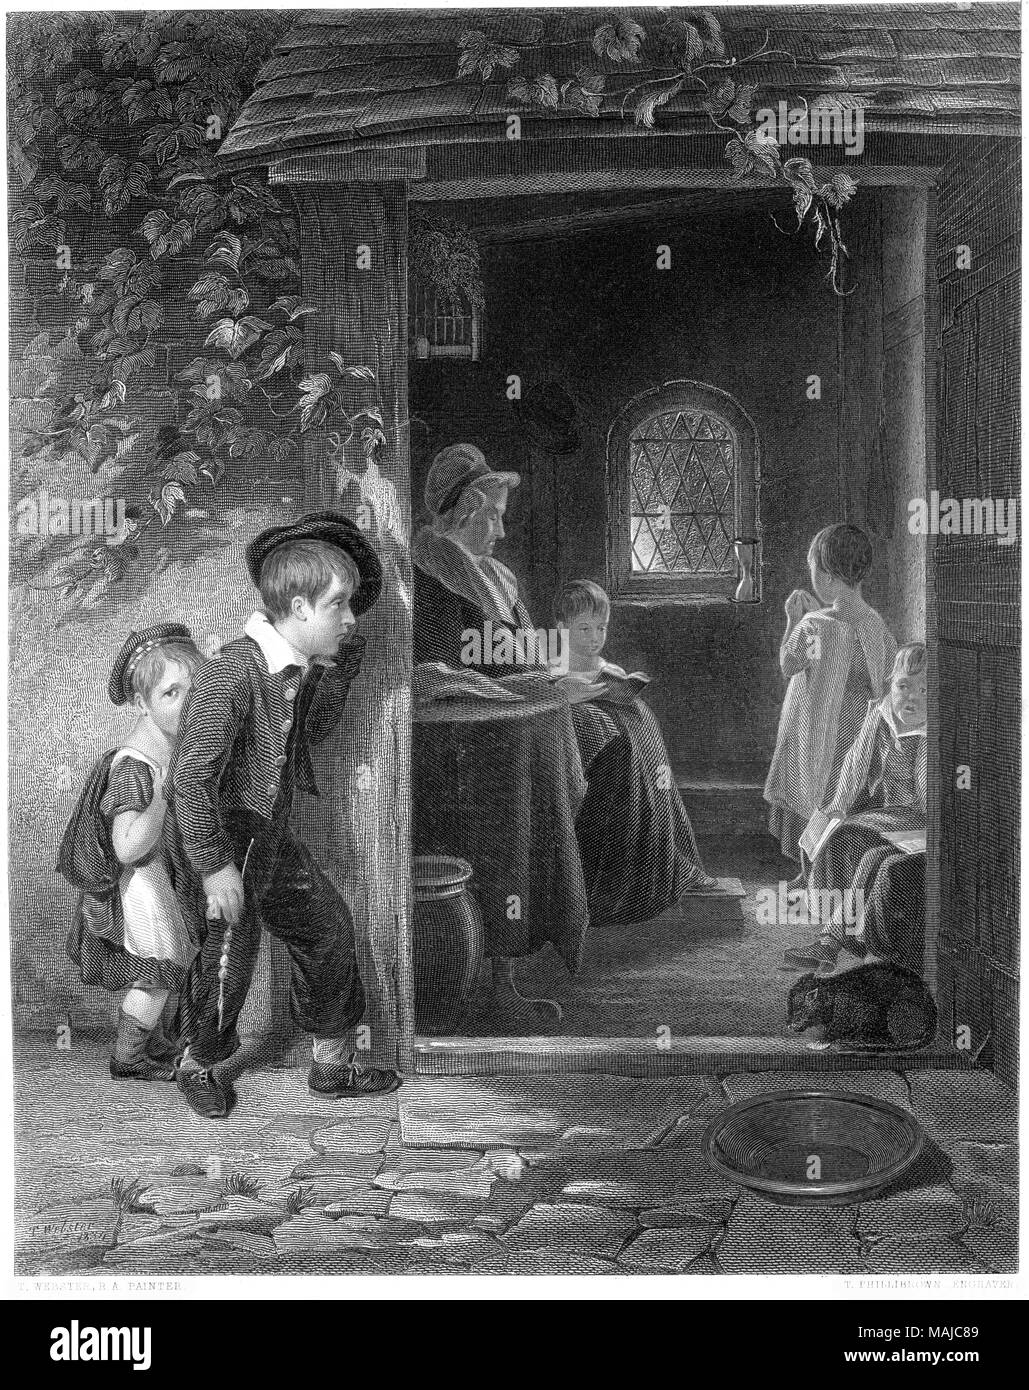 An engraving entitled The Truant from the picture by Thomas Webster in the Vernon Gallery scanned at high resolution from a book printed in 1849. - Stock Image